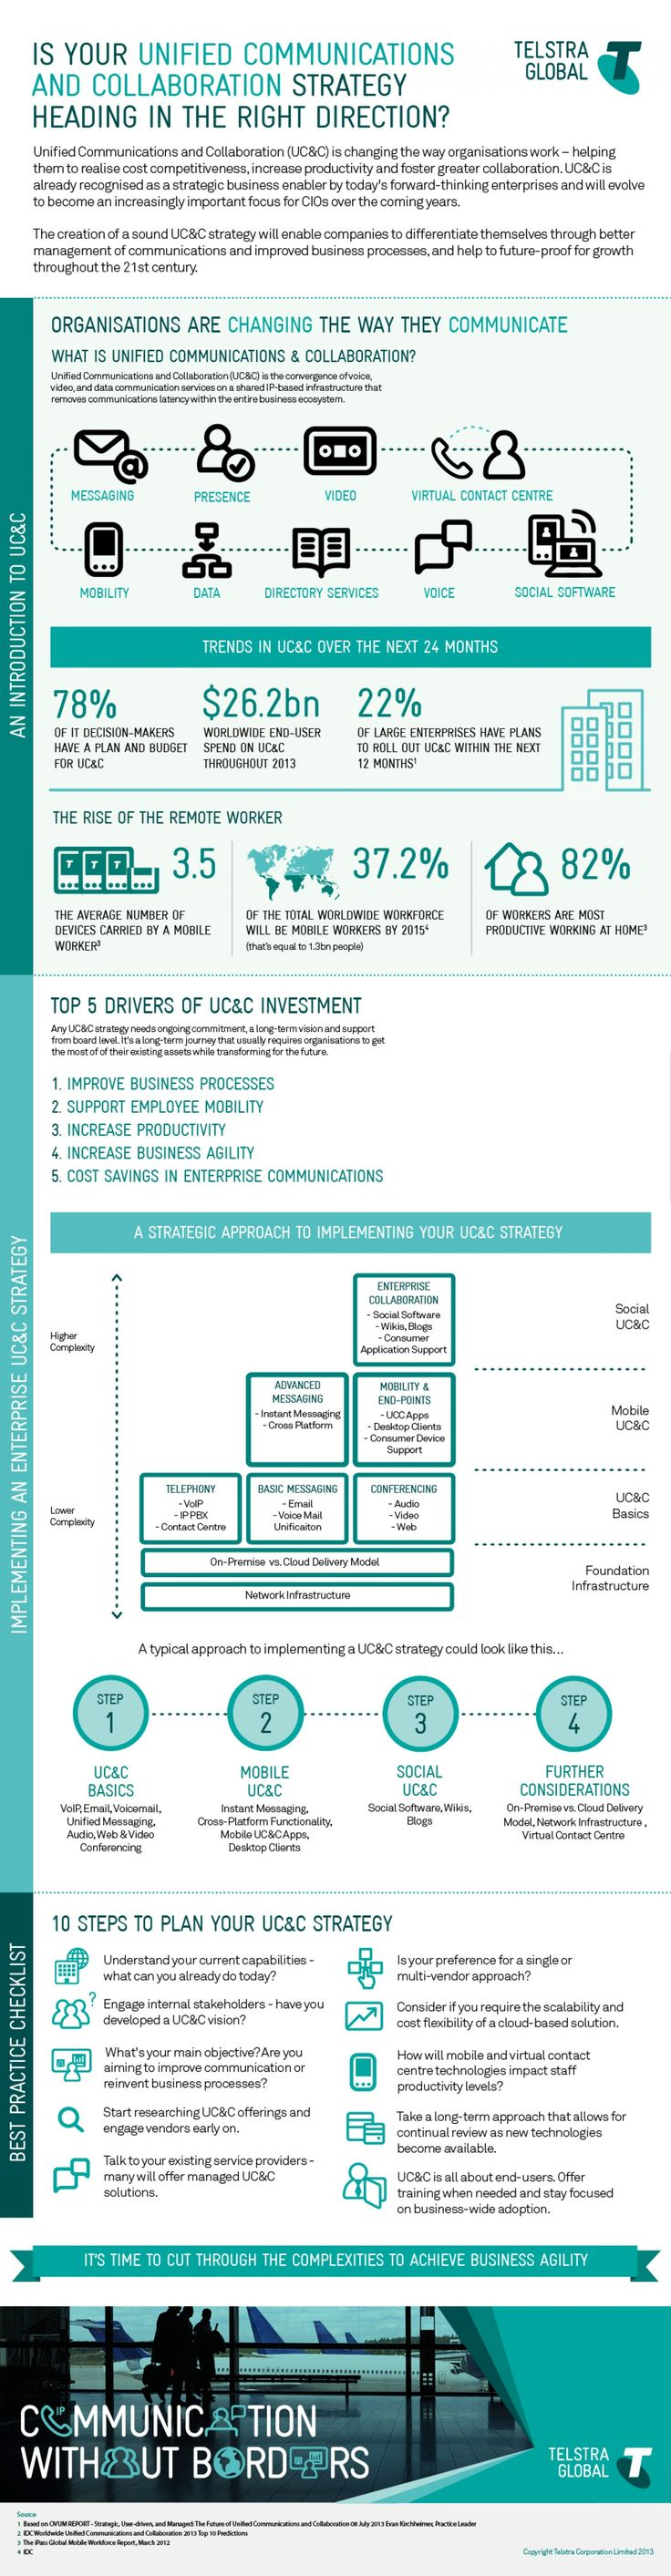 Is Your Unified Communications Strategy Heading in the Right Direction? Infographic